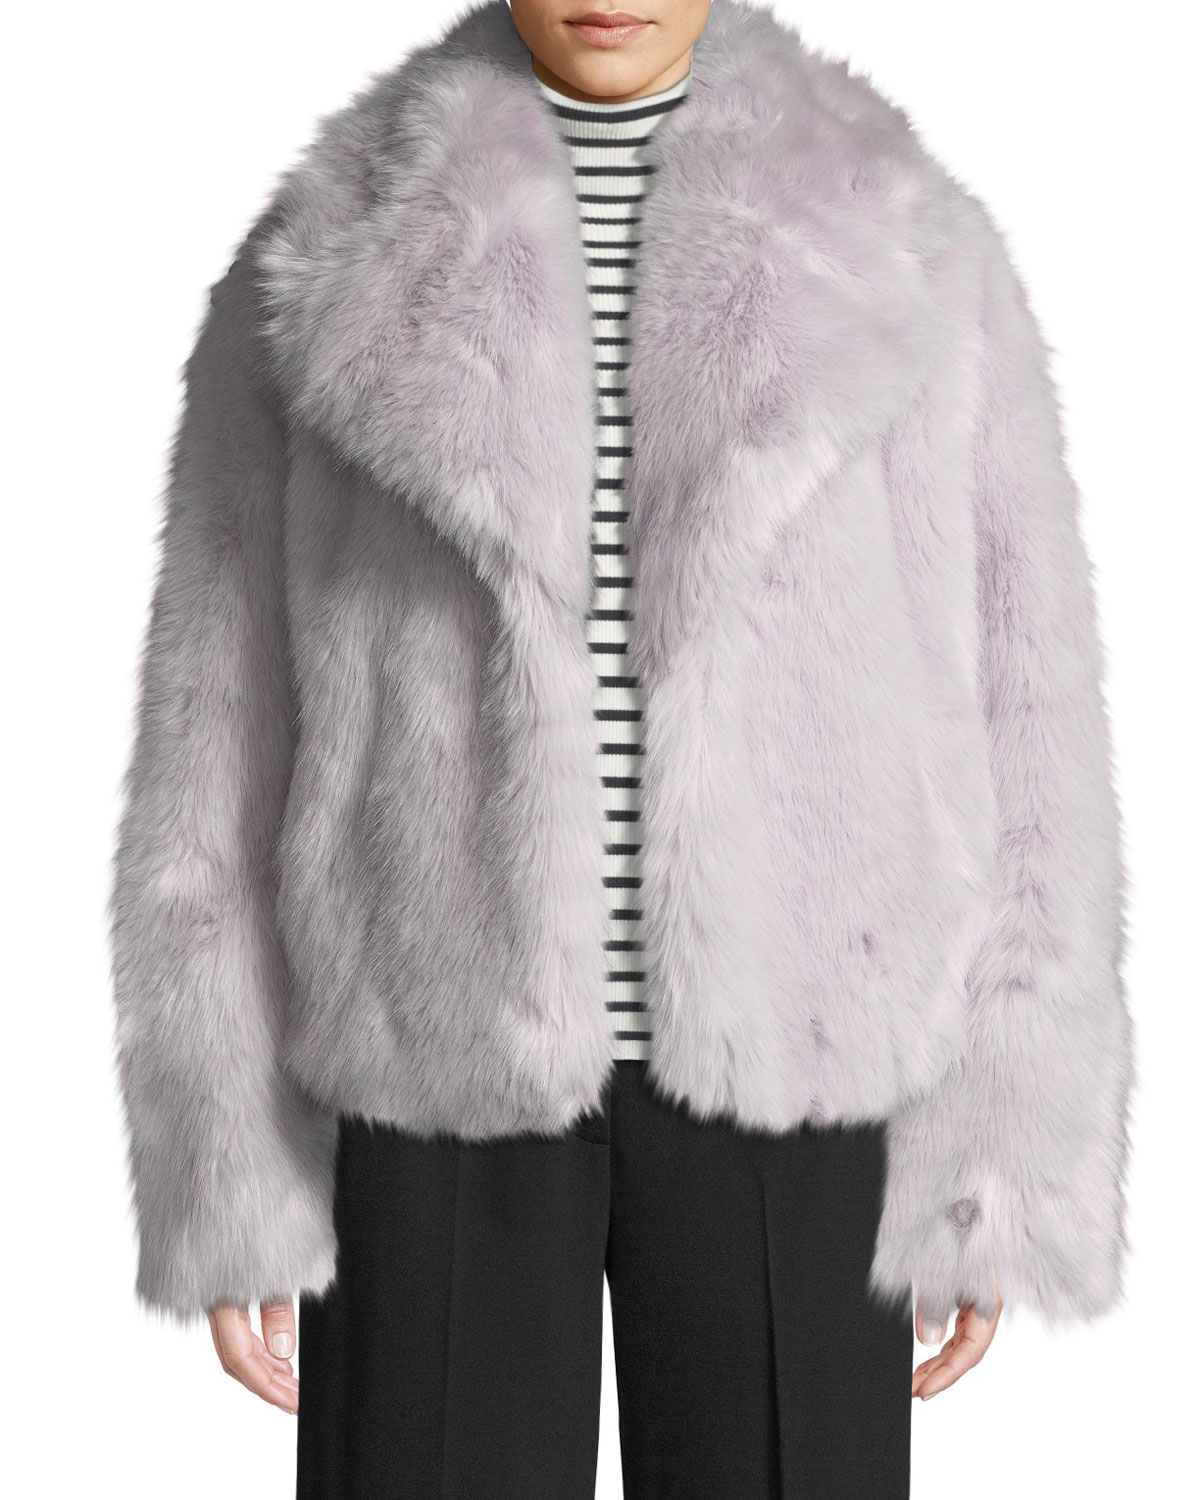 1b0b14c71 Grant Long-Sleeve Faux-Fur Jacket